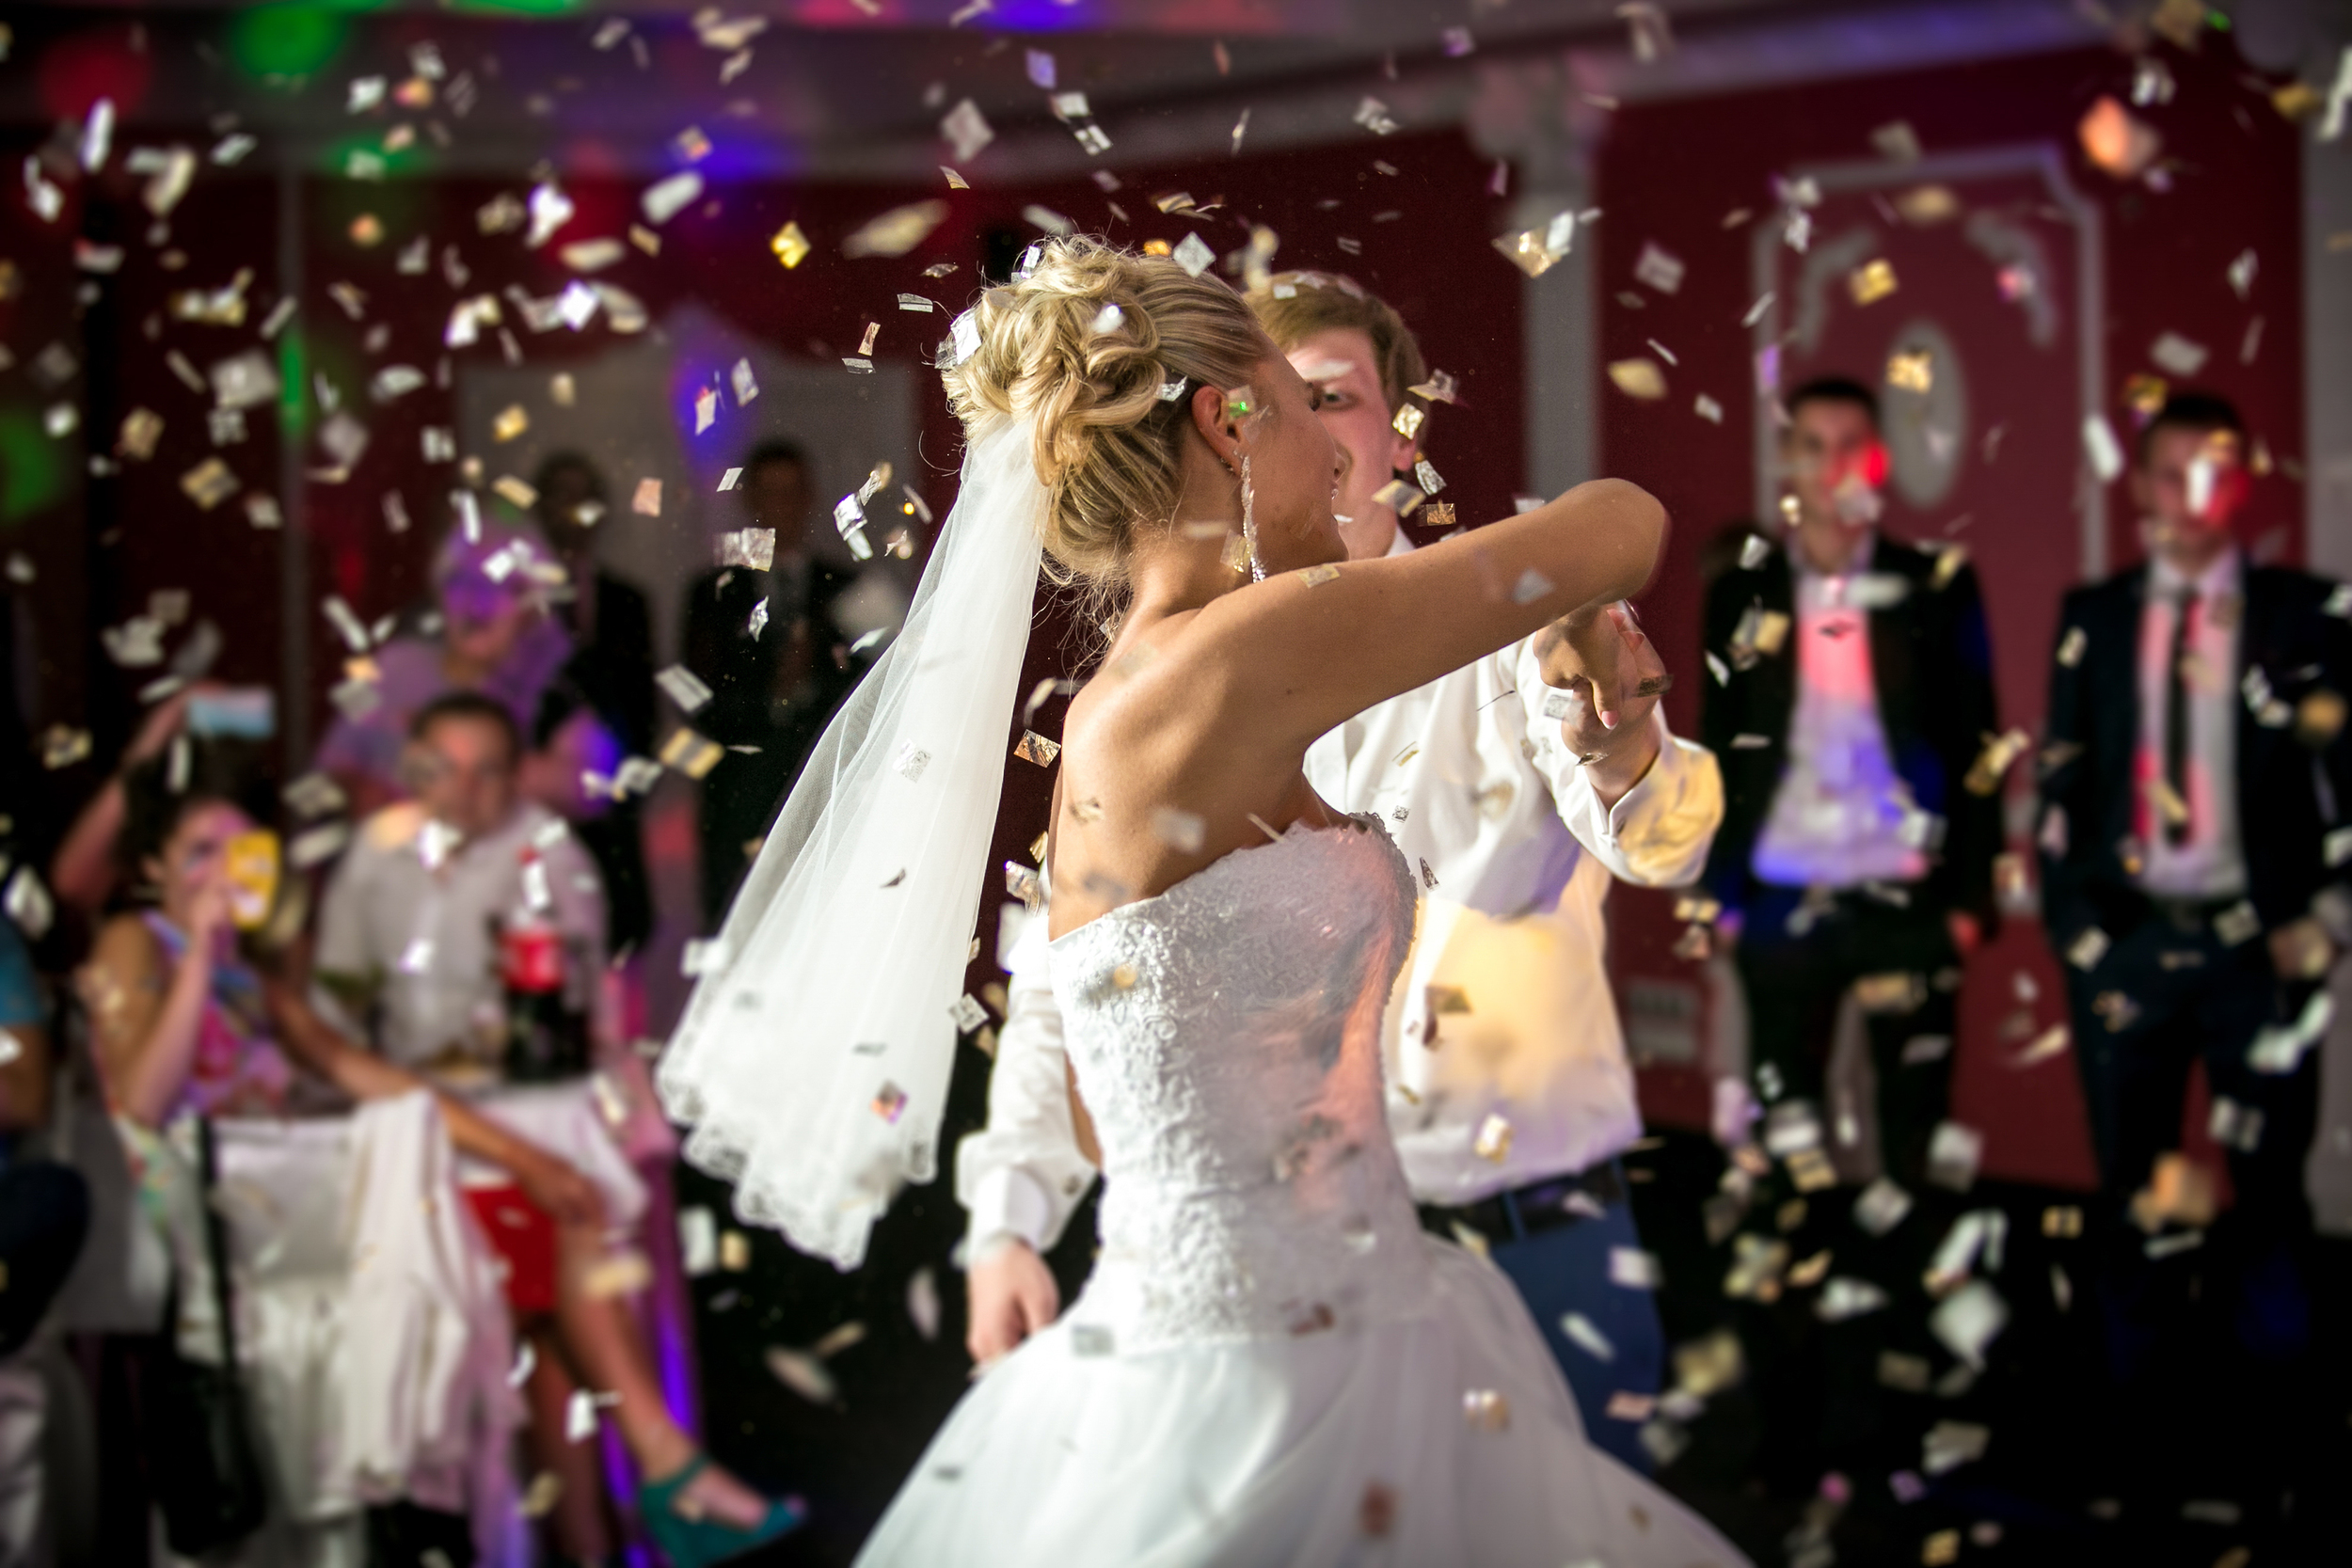 bigstock-Blonde-Bride-Dancing-At-Restau-82917941.jpg